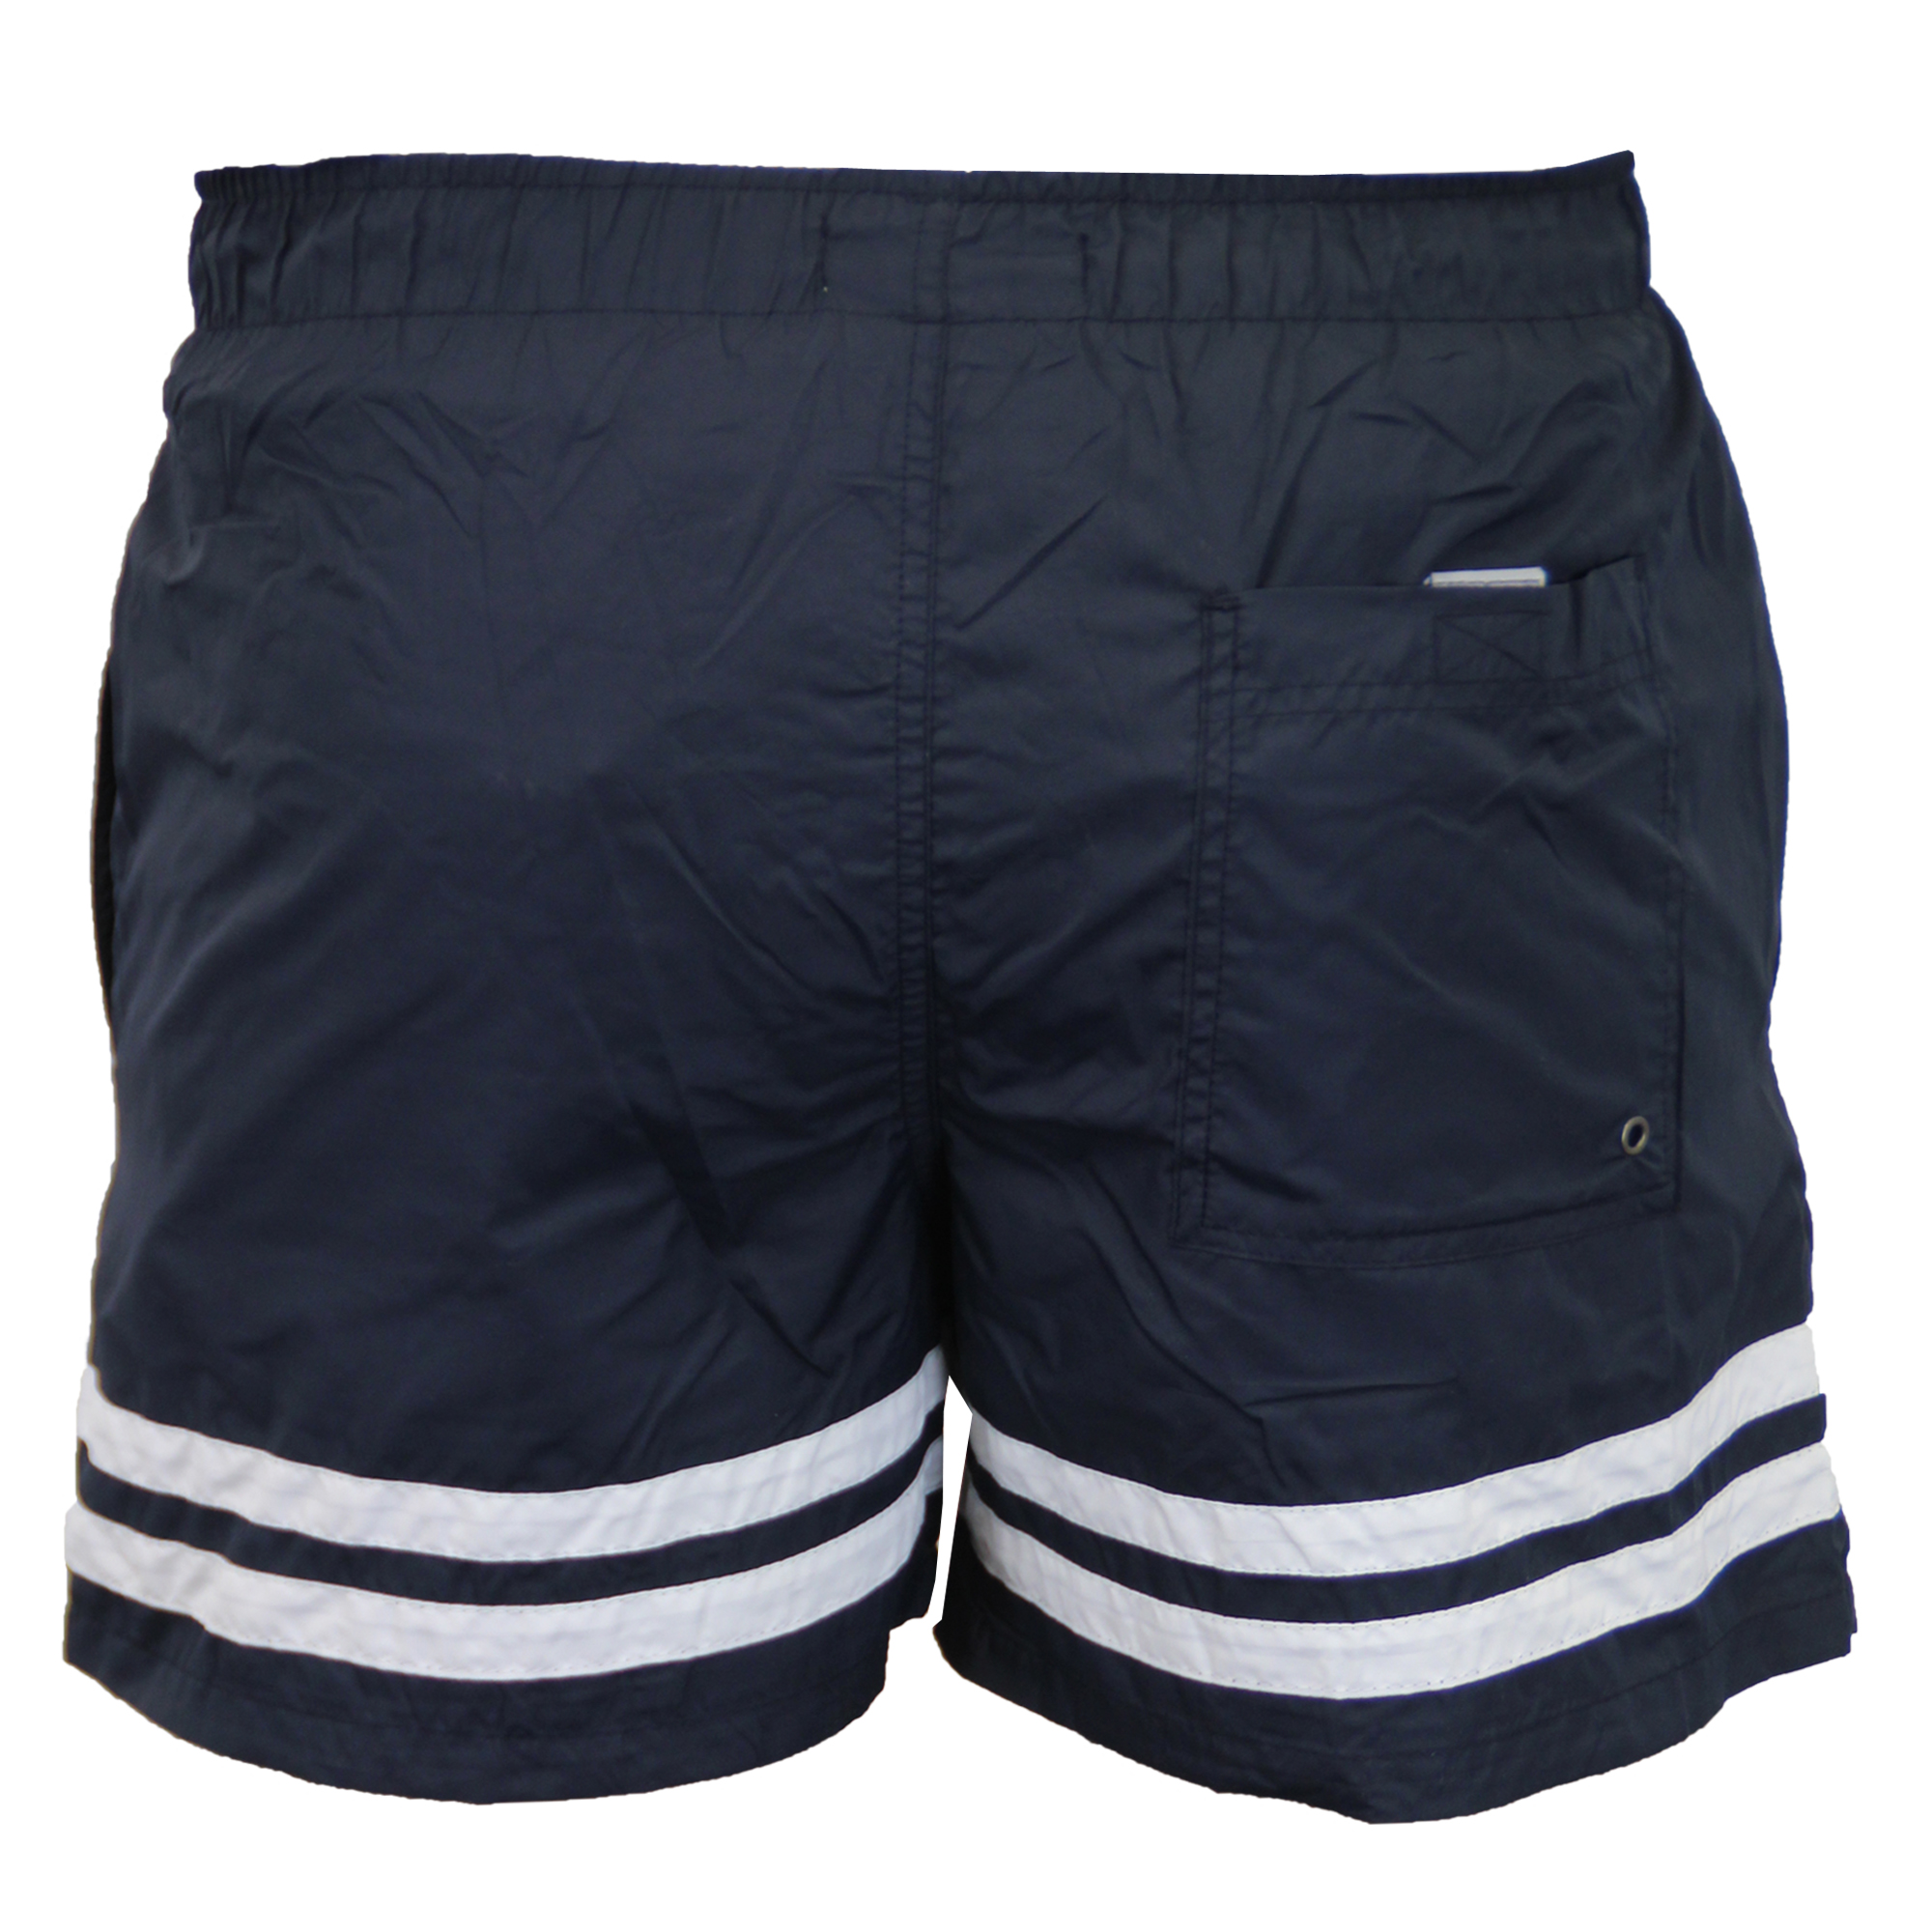 Mens-Swim-Board-Shorts-By-Brave-Soul-Mesh-Lined-New thumbnail 38